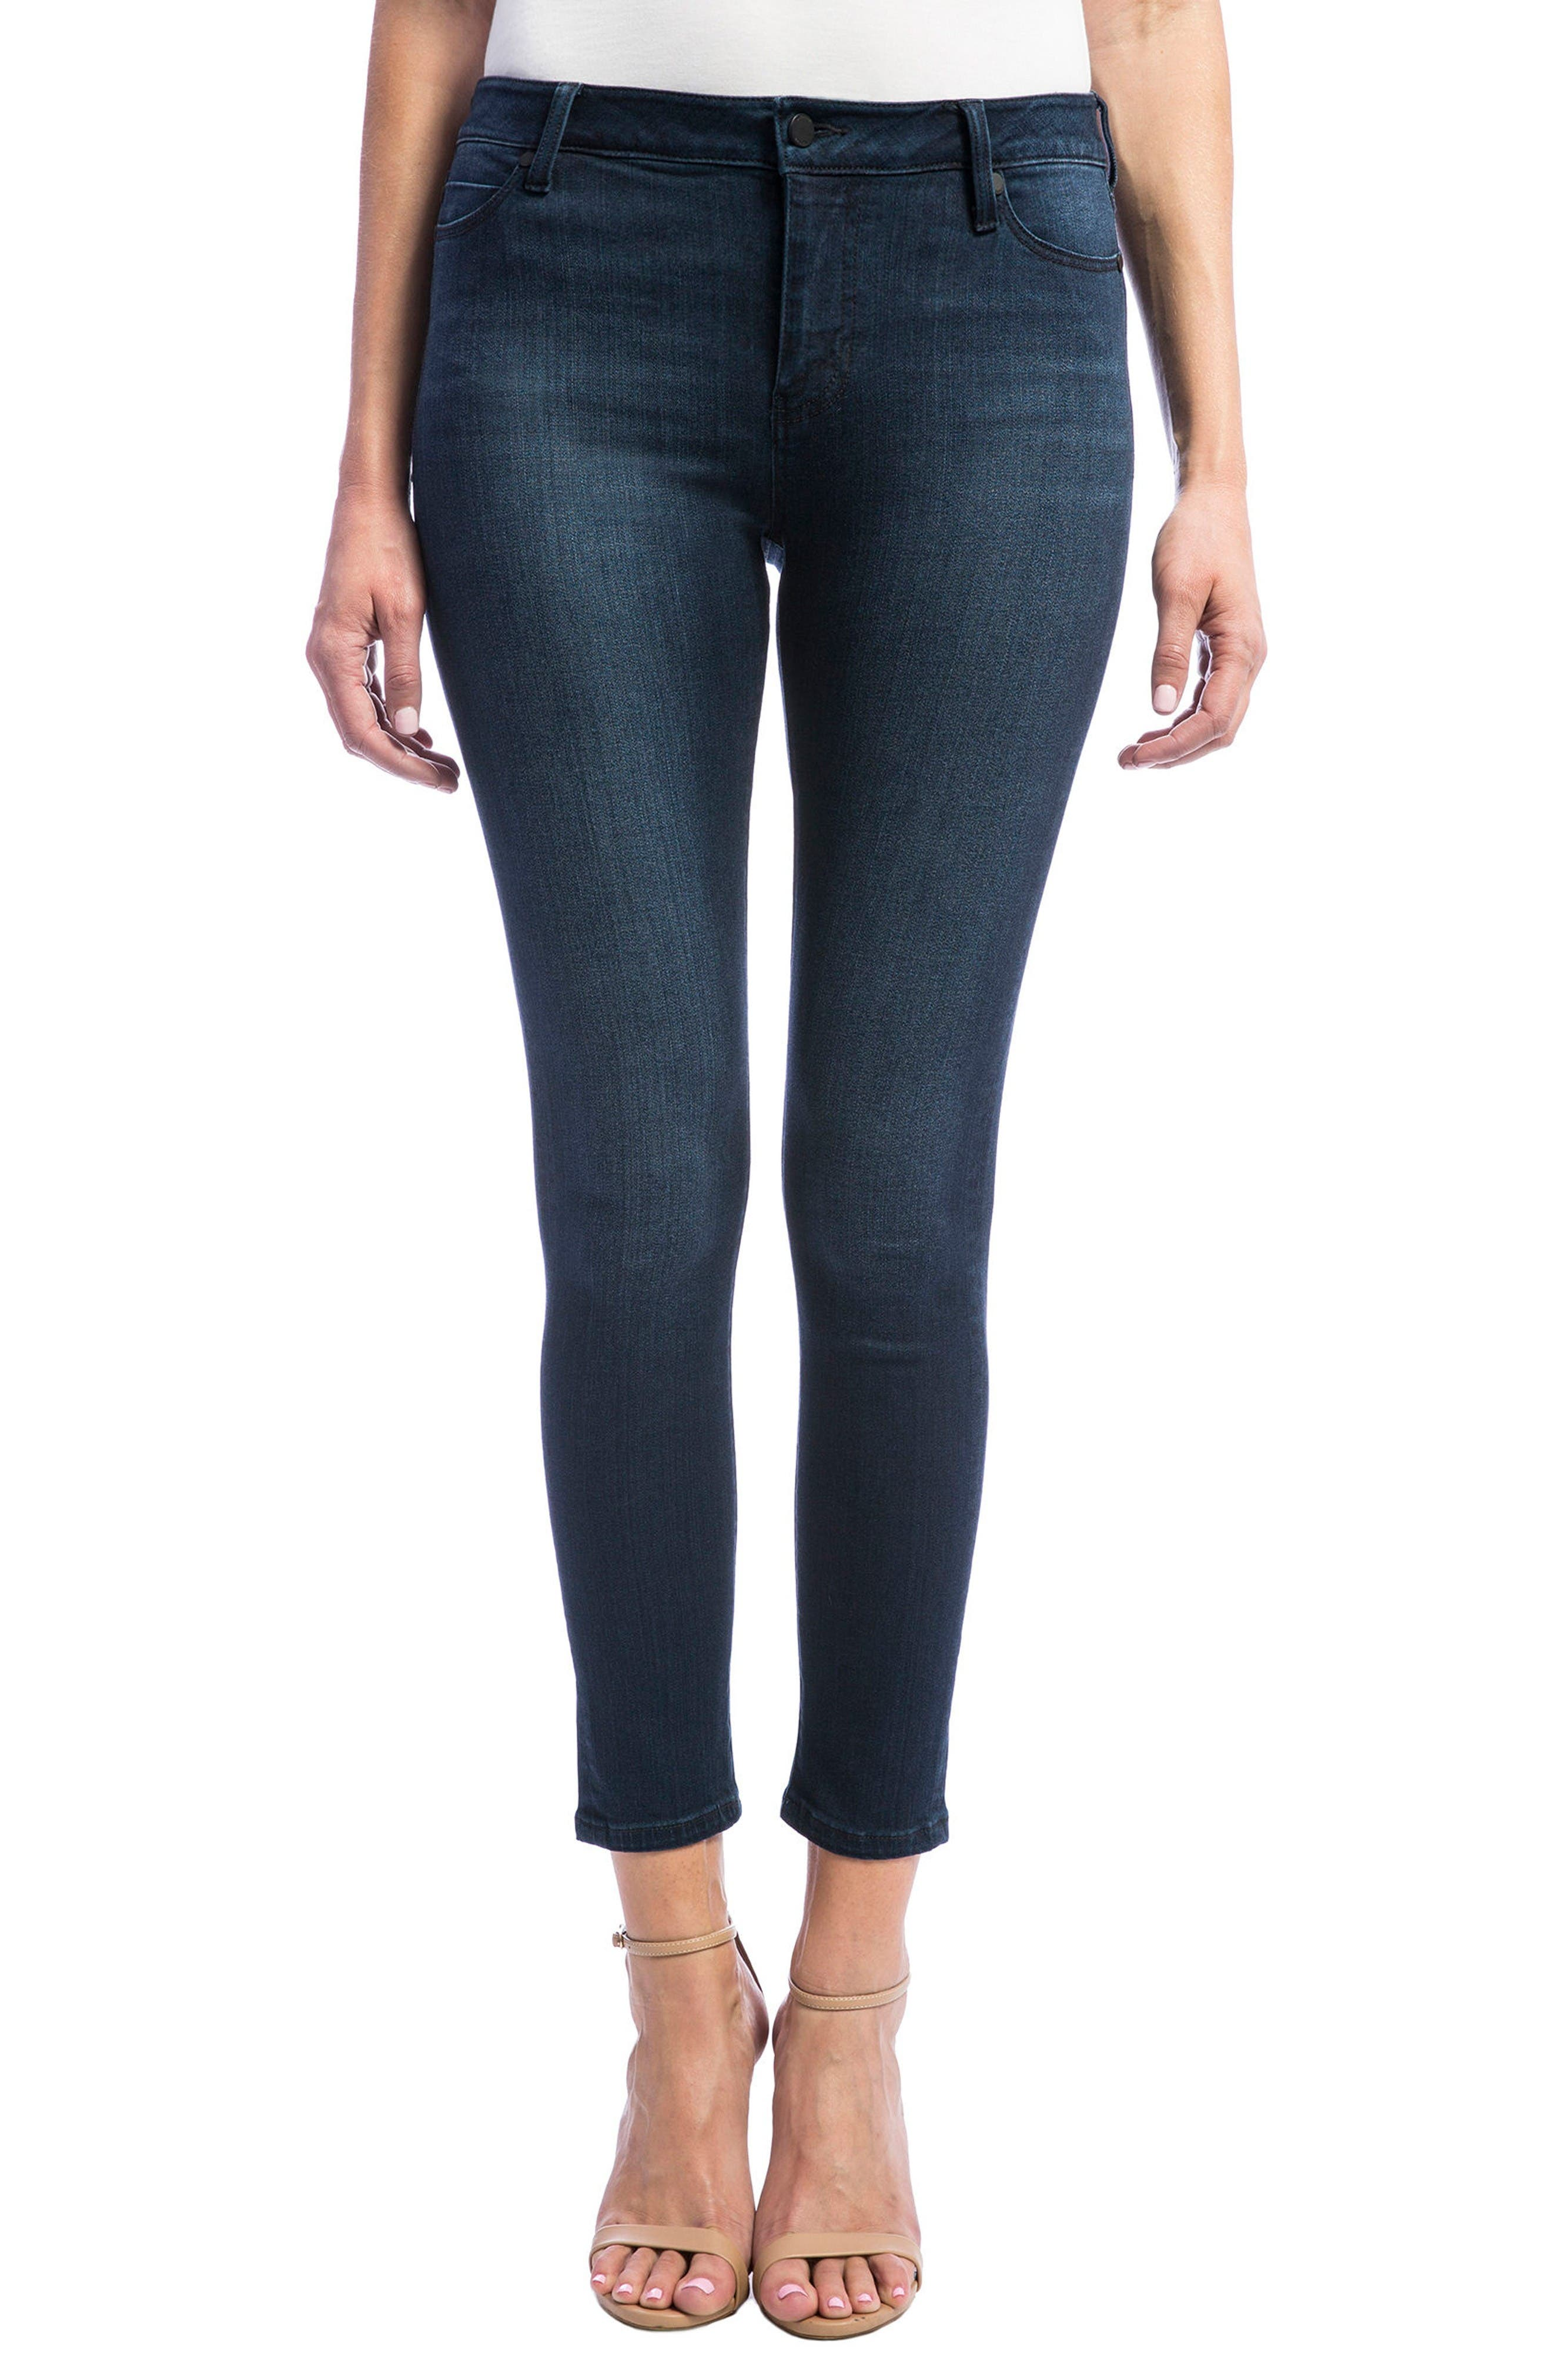 Liverpool Jeans Company High Rise Stretch Ankle Skinny Jeans (Doheny Dark)